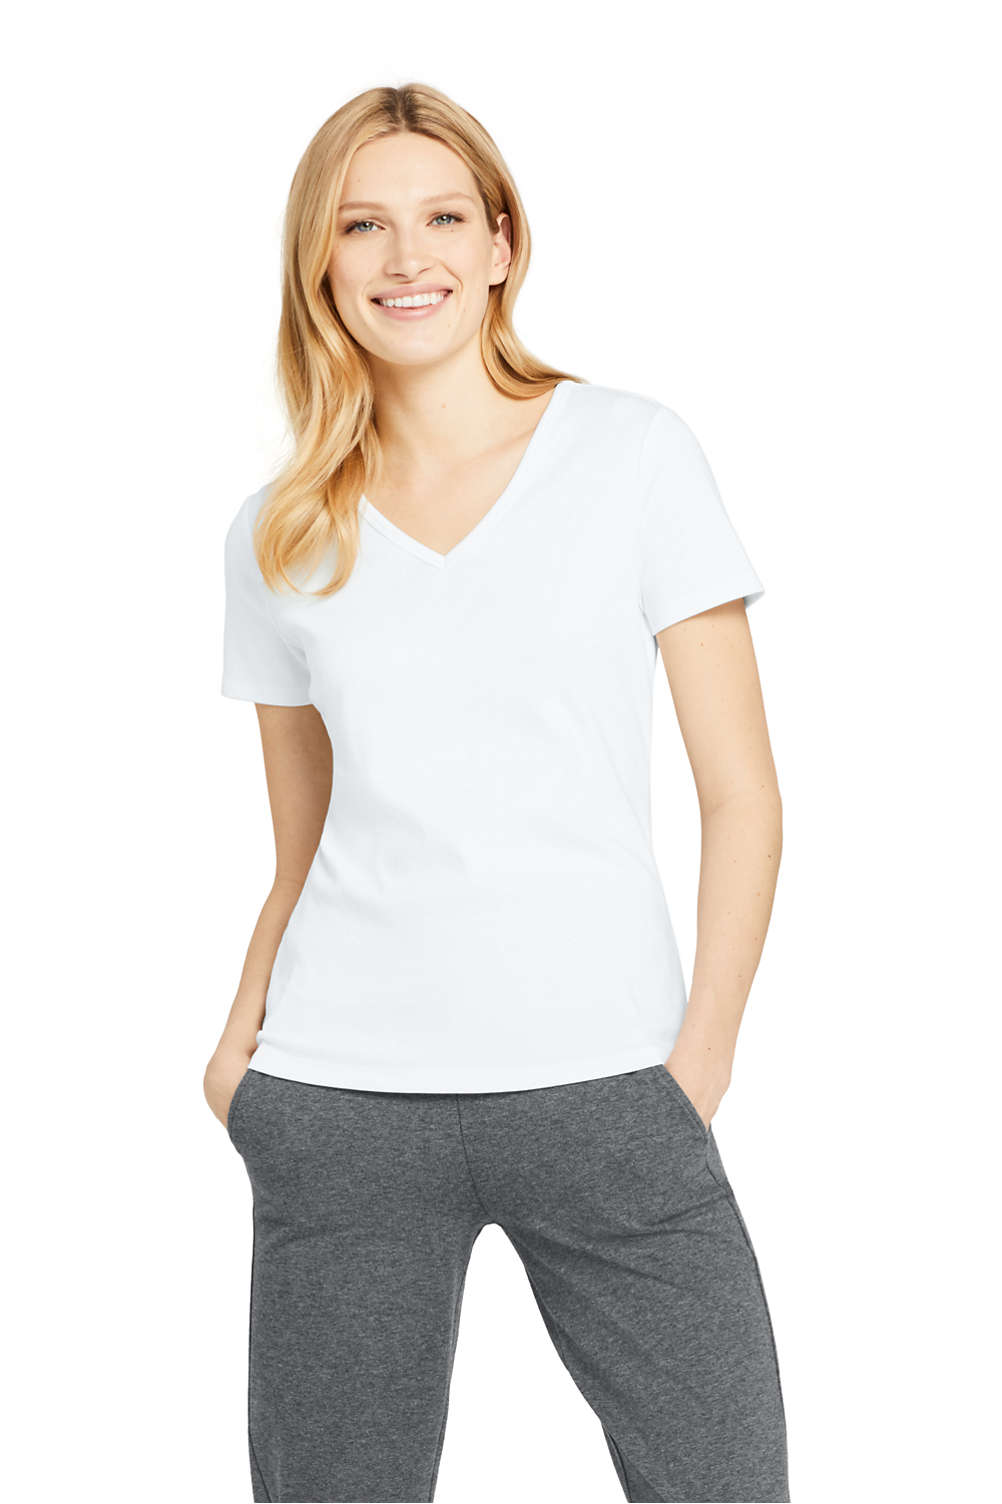 6fafdf1ca14040 Women's All Cotton Short Sleeve T-Shirt Rib Knit V-Neck from Lands' End